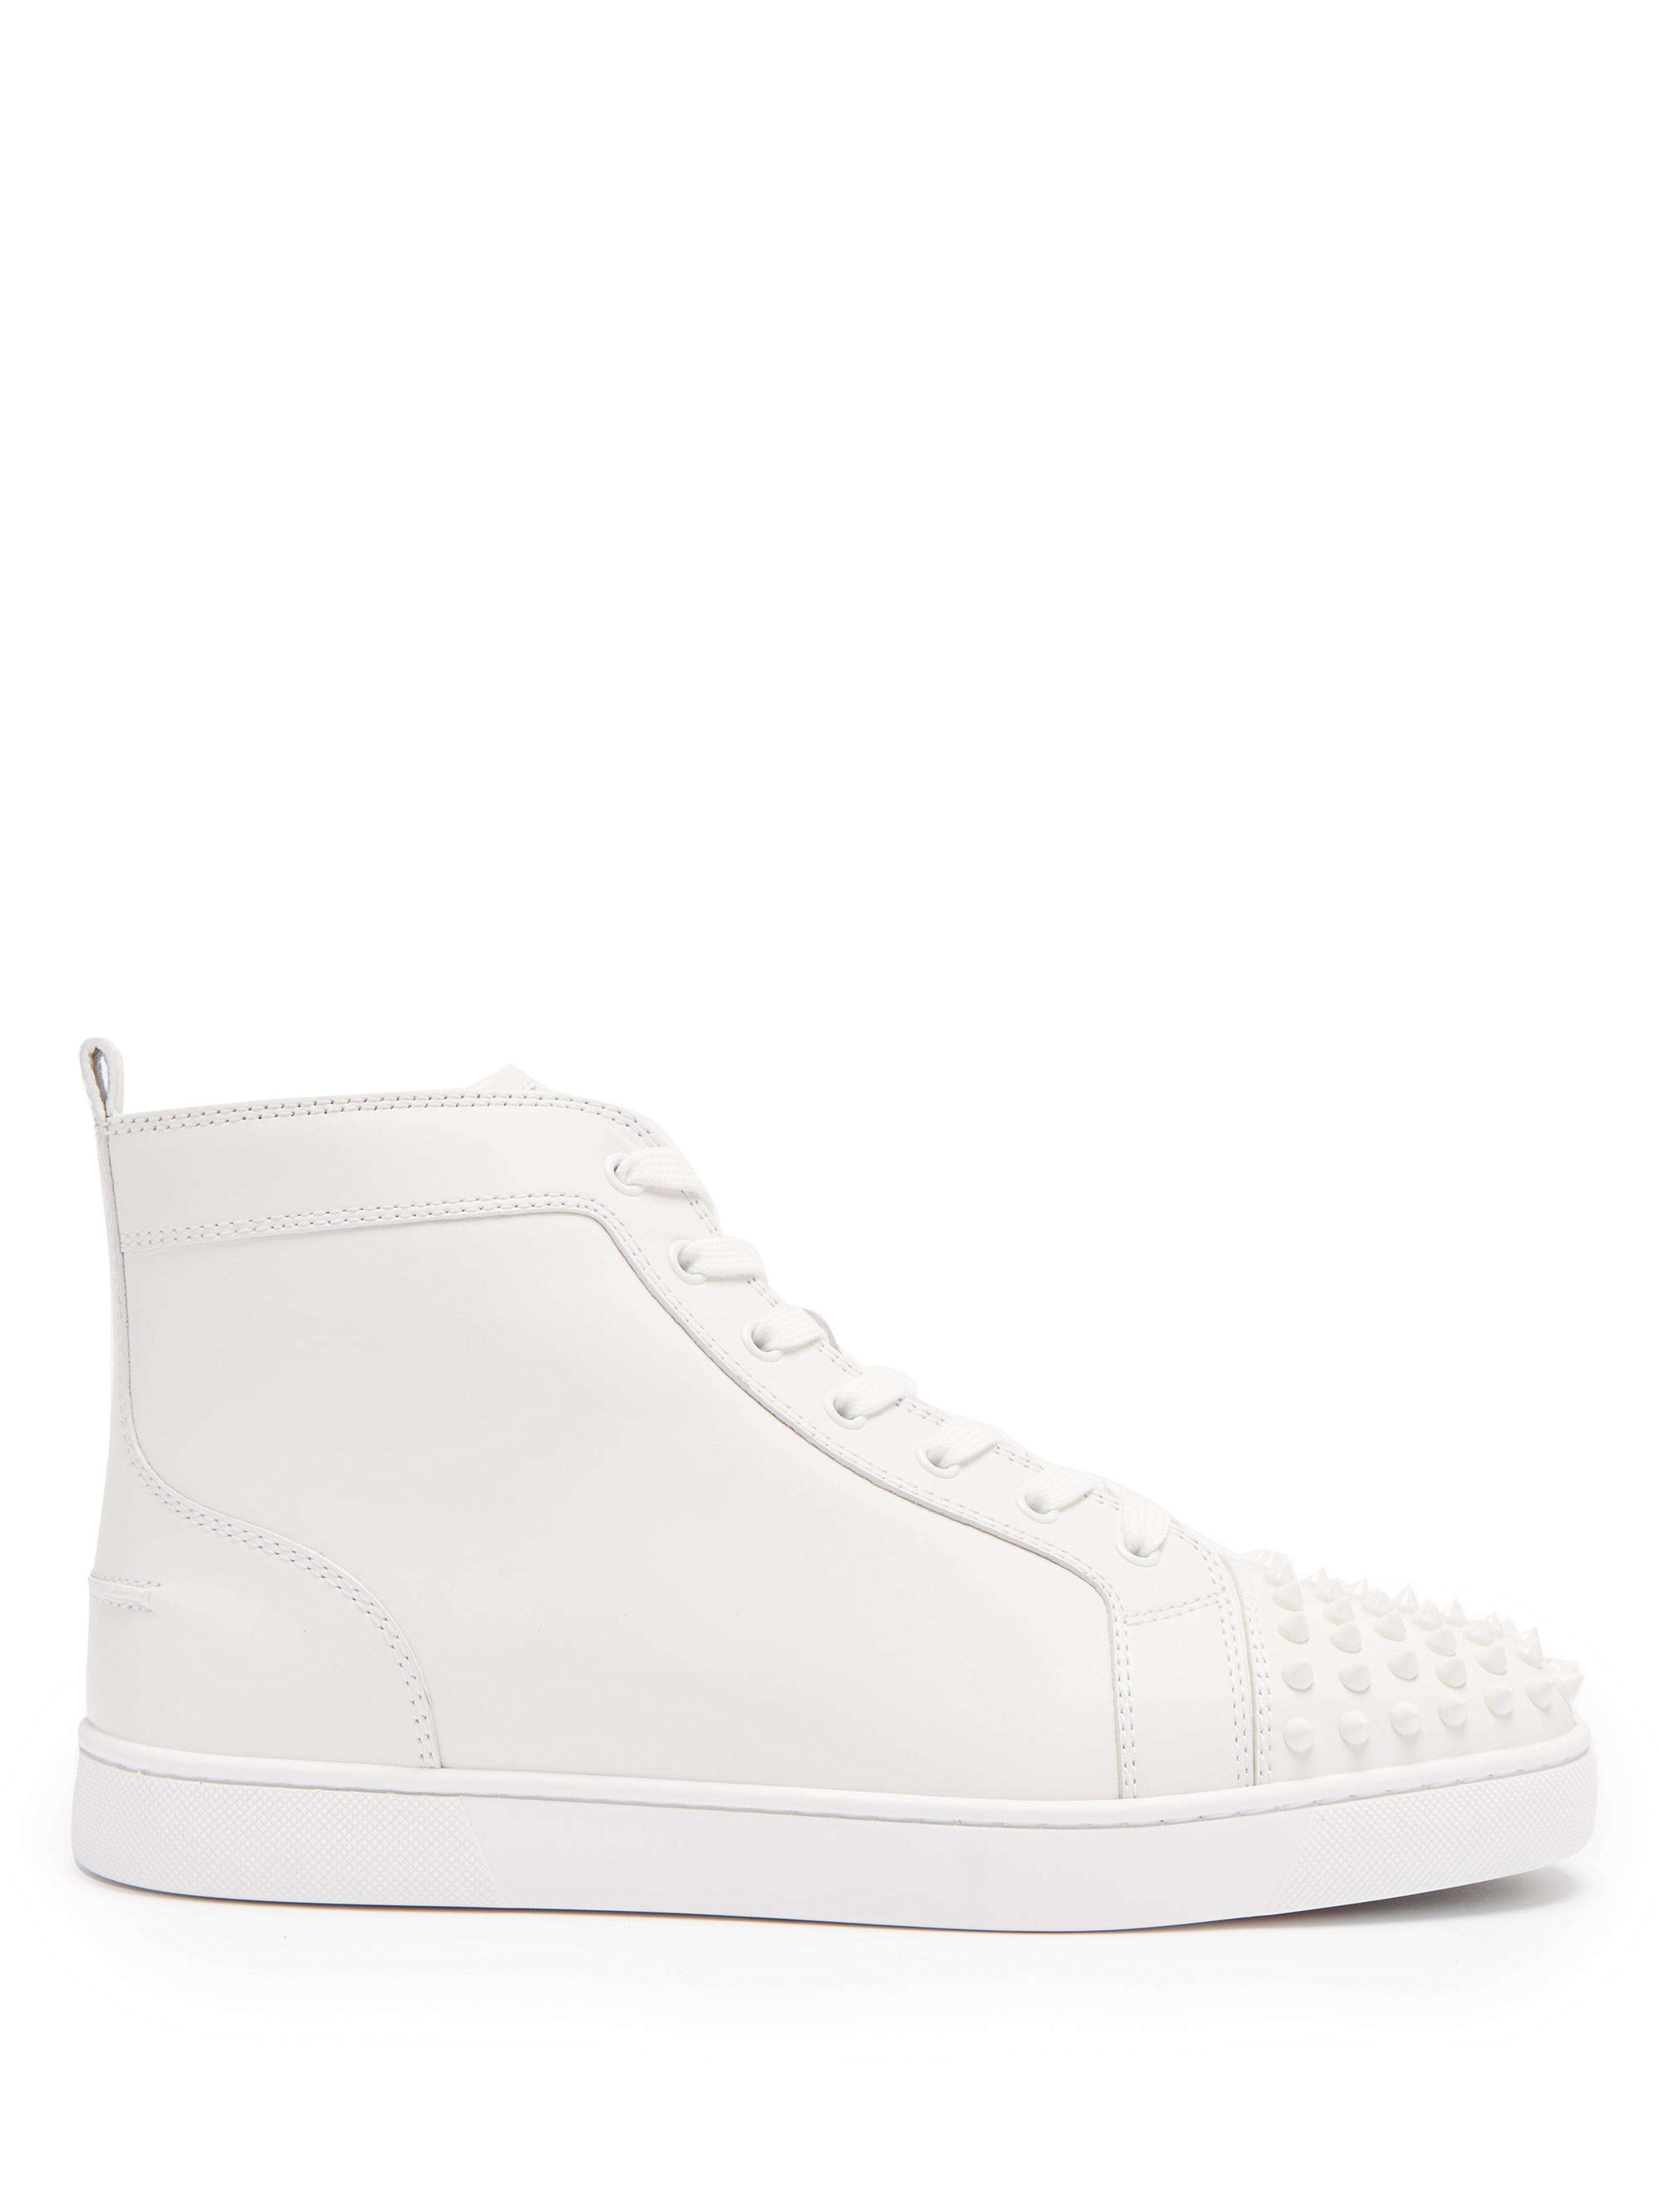 ab2b68f502c Christian Louboutin Rankick Flat Leather Sneakers in White for Men ...